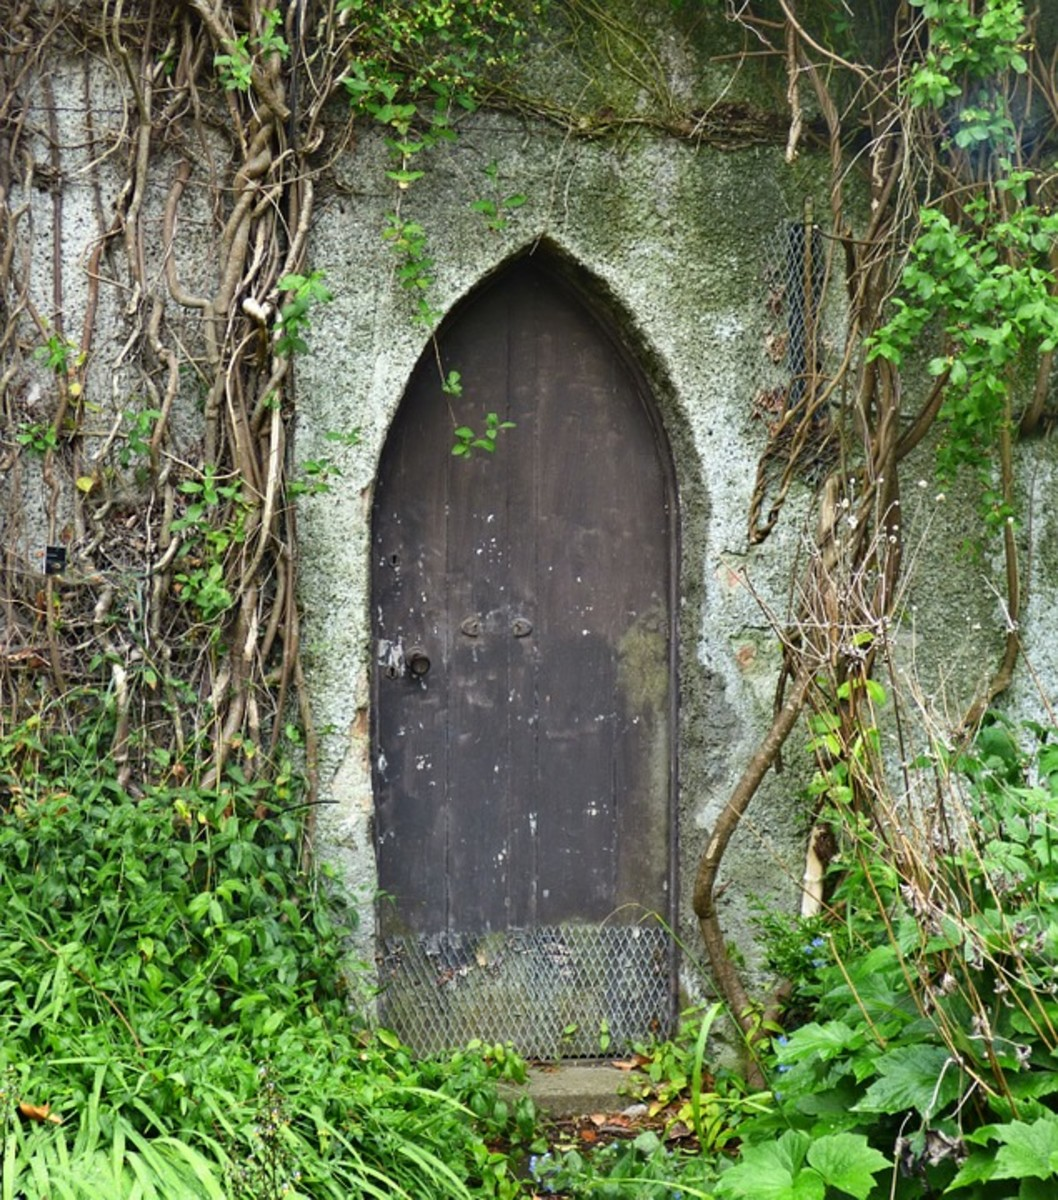 Ancient door in Ireland.